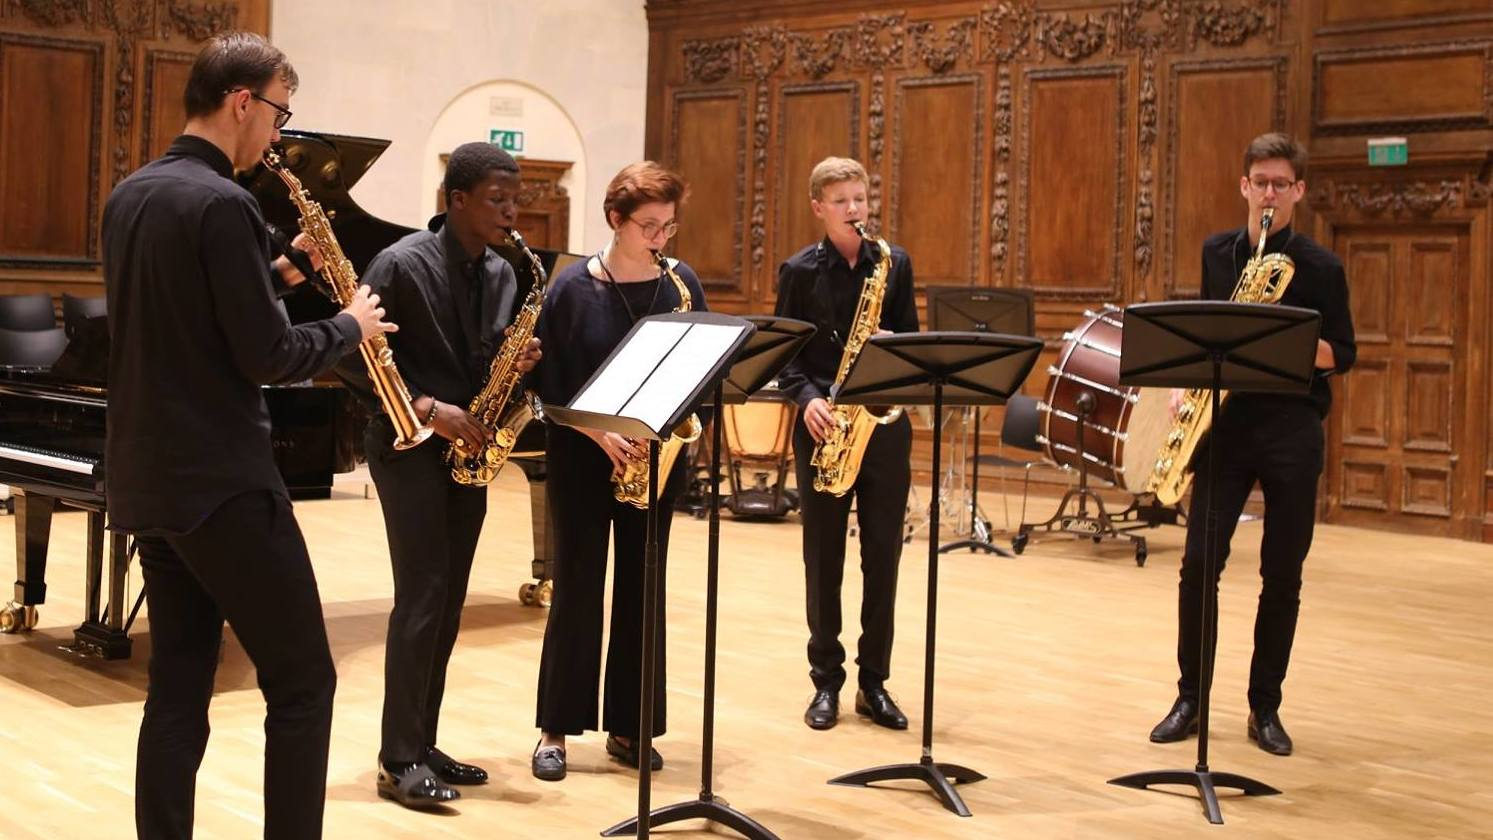 Concert from our Summer School Saxophone quartet